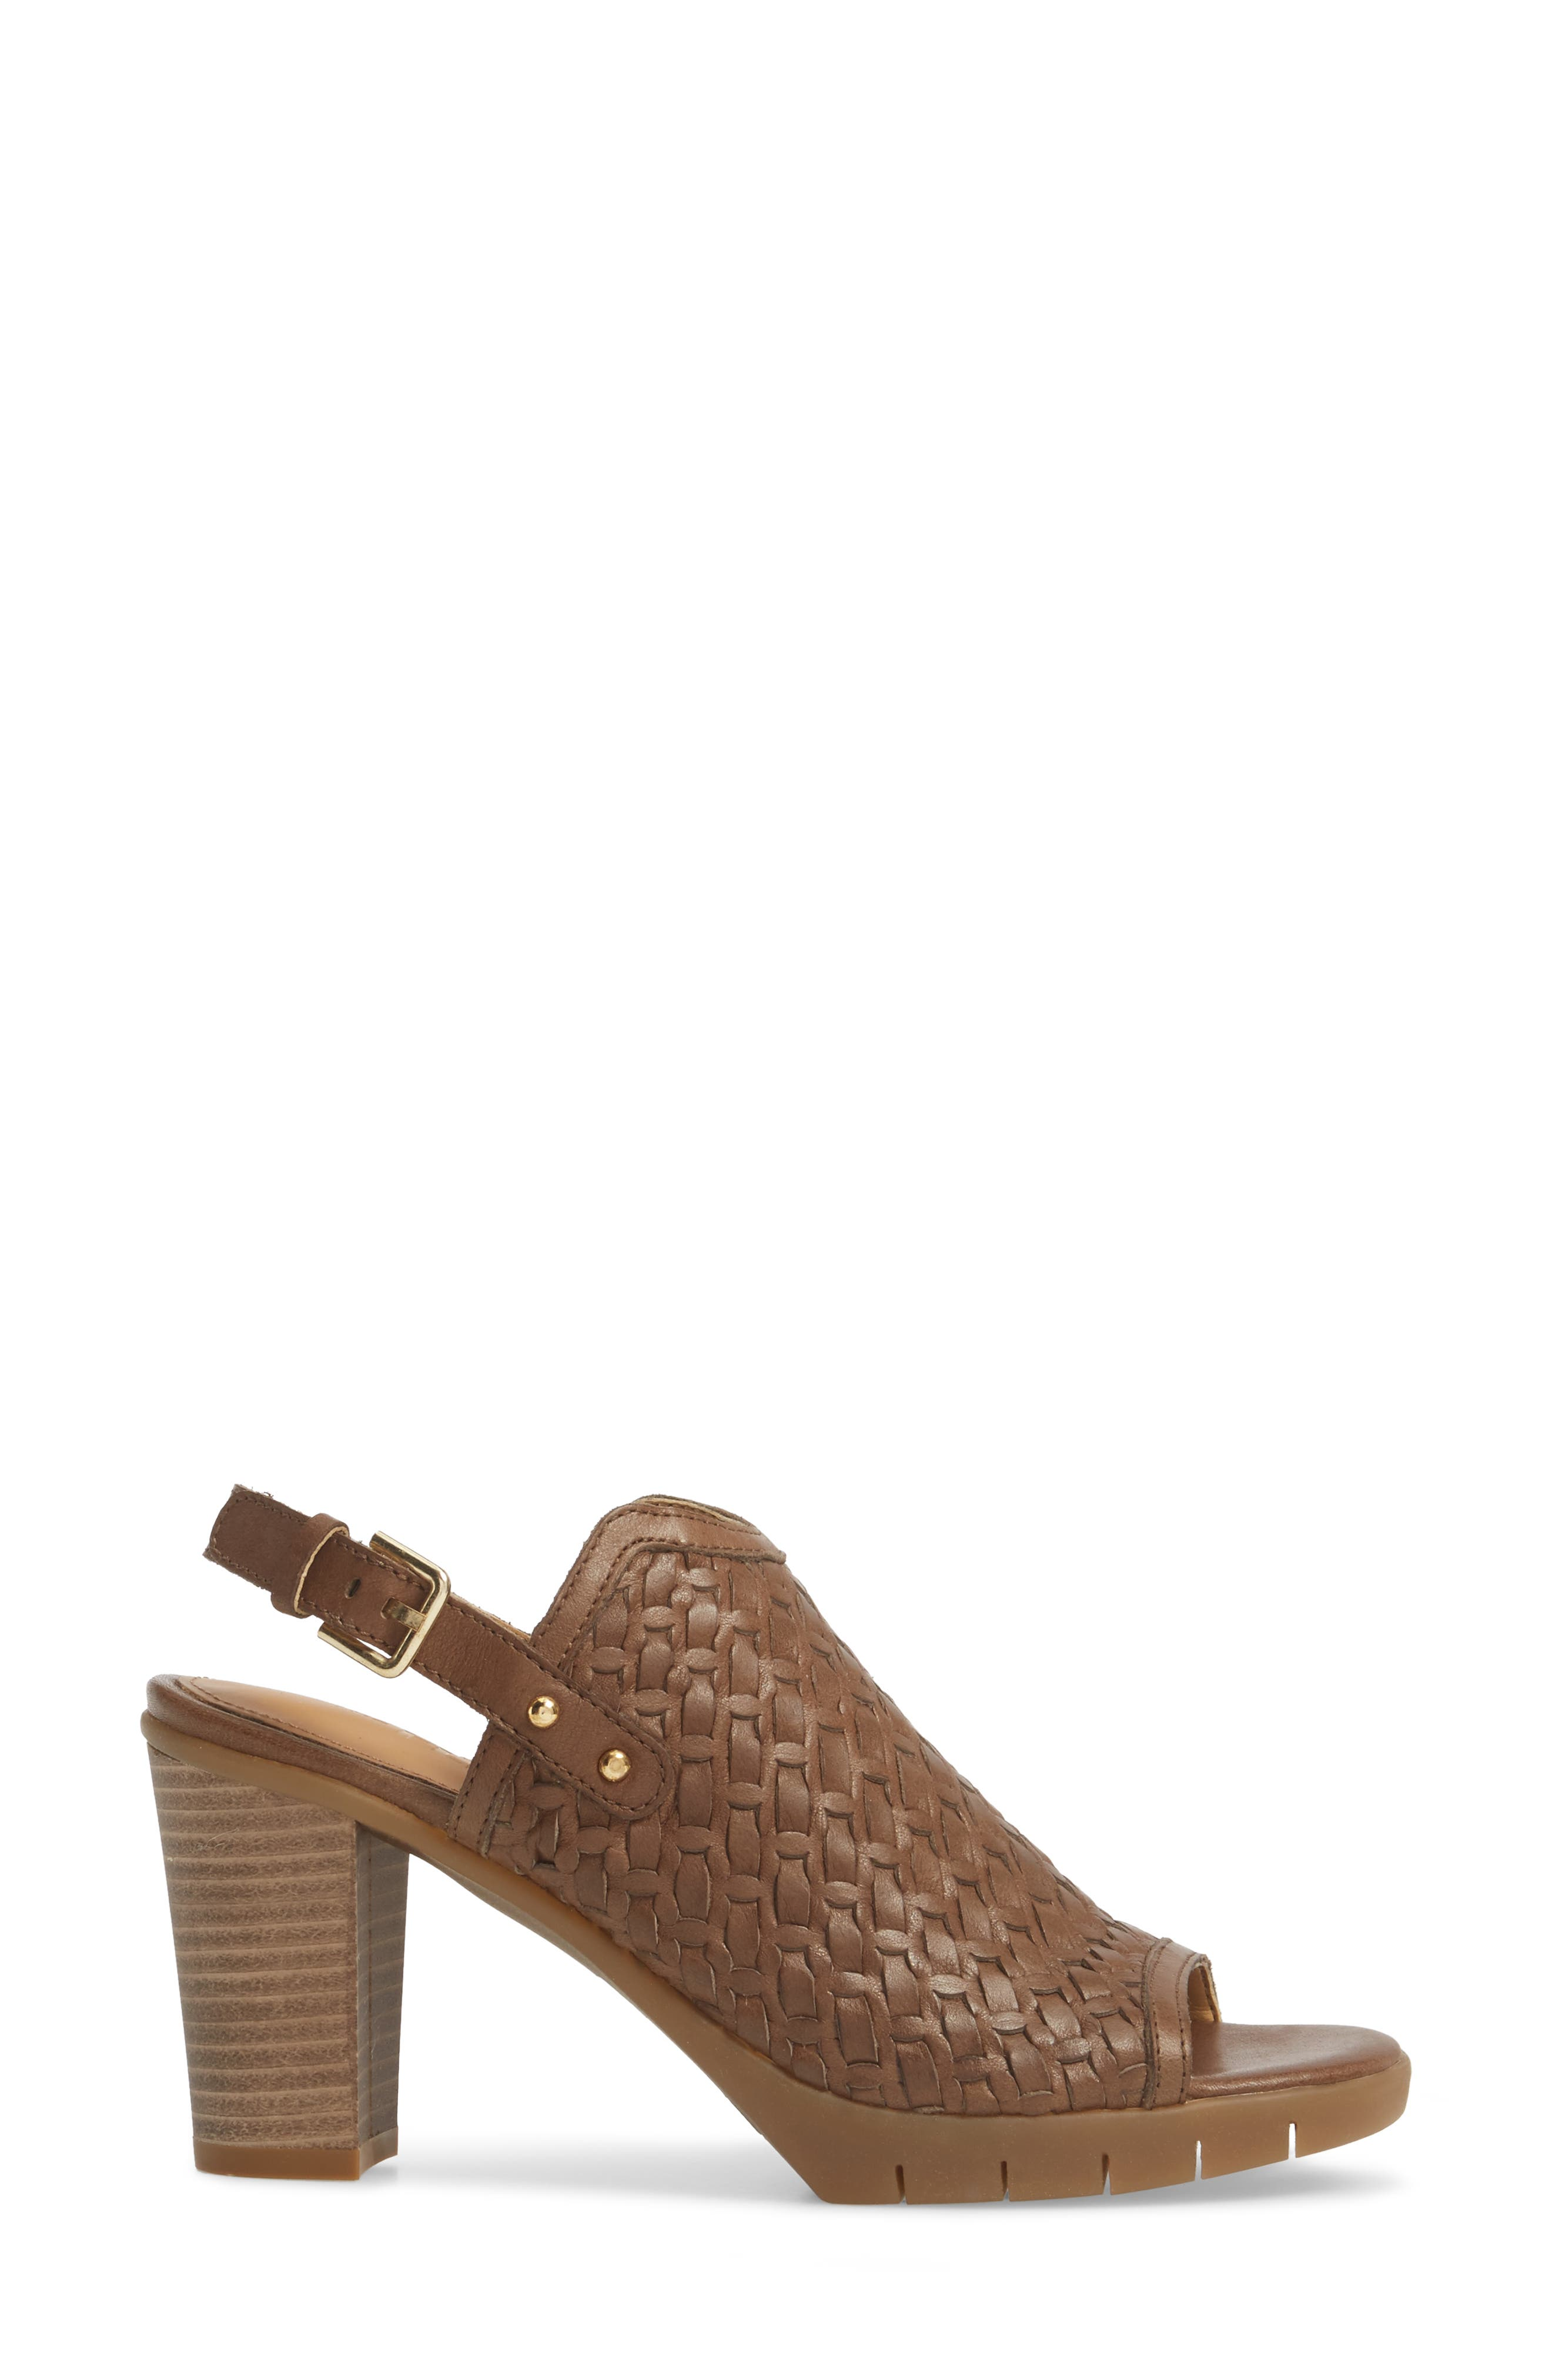 Weave Me Be Slingback Sandal,                             Alternate thumbnail 3, color,                             Chocolate Leather